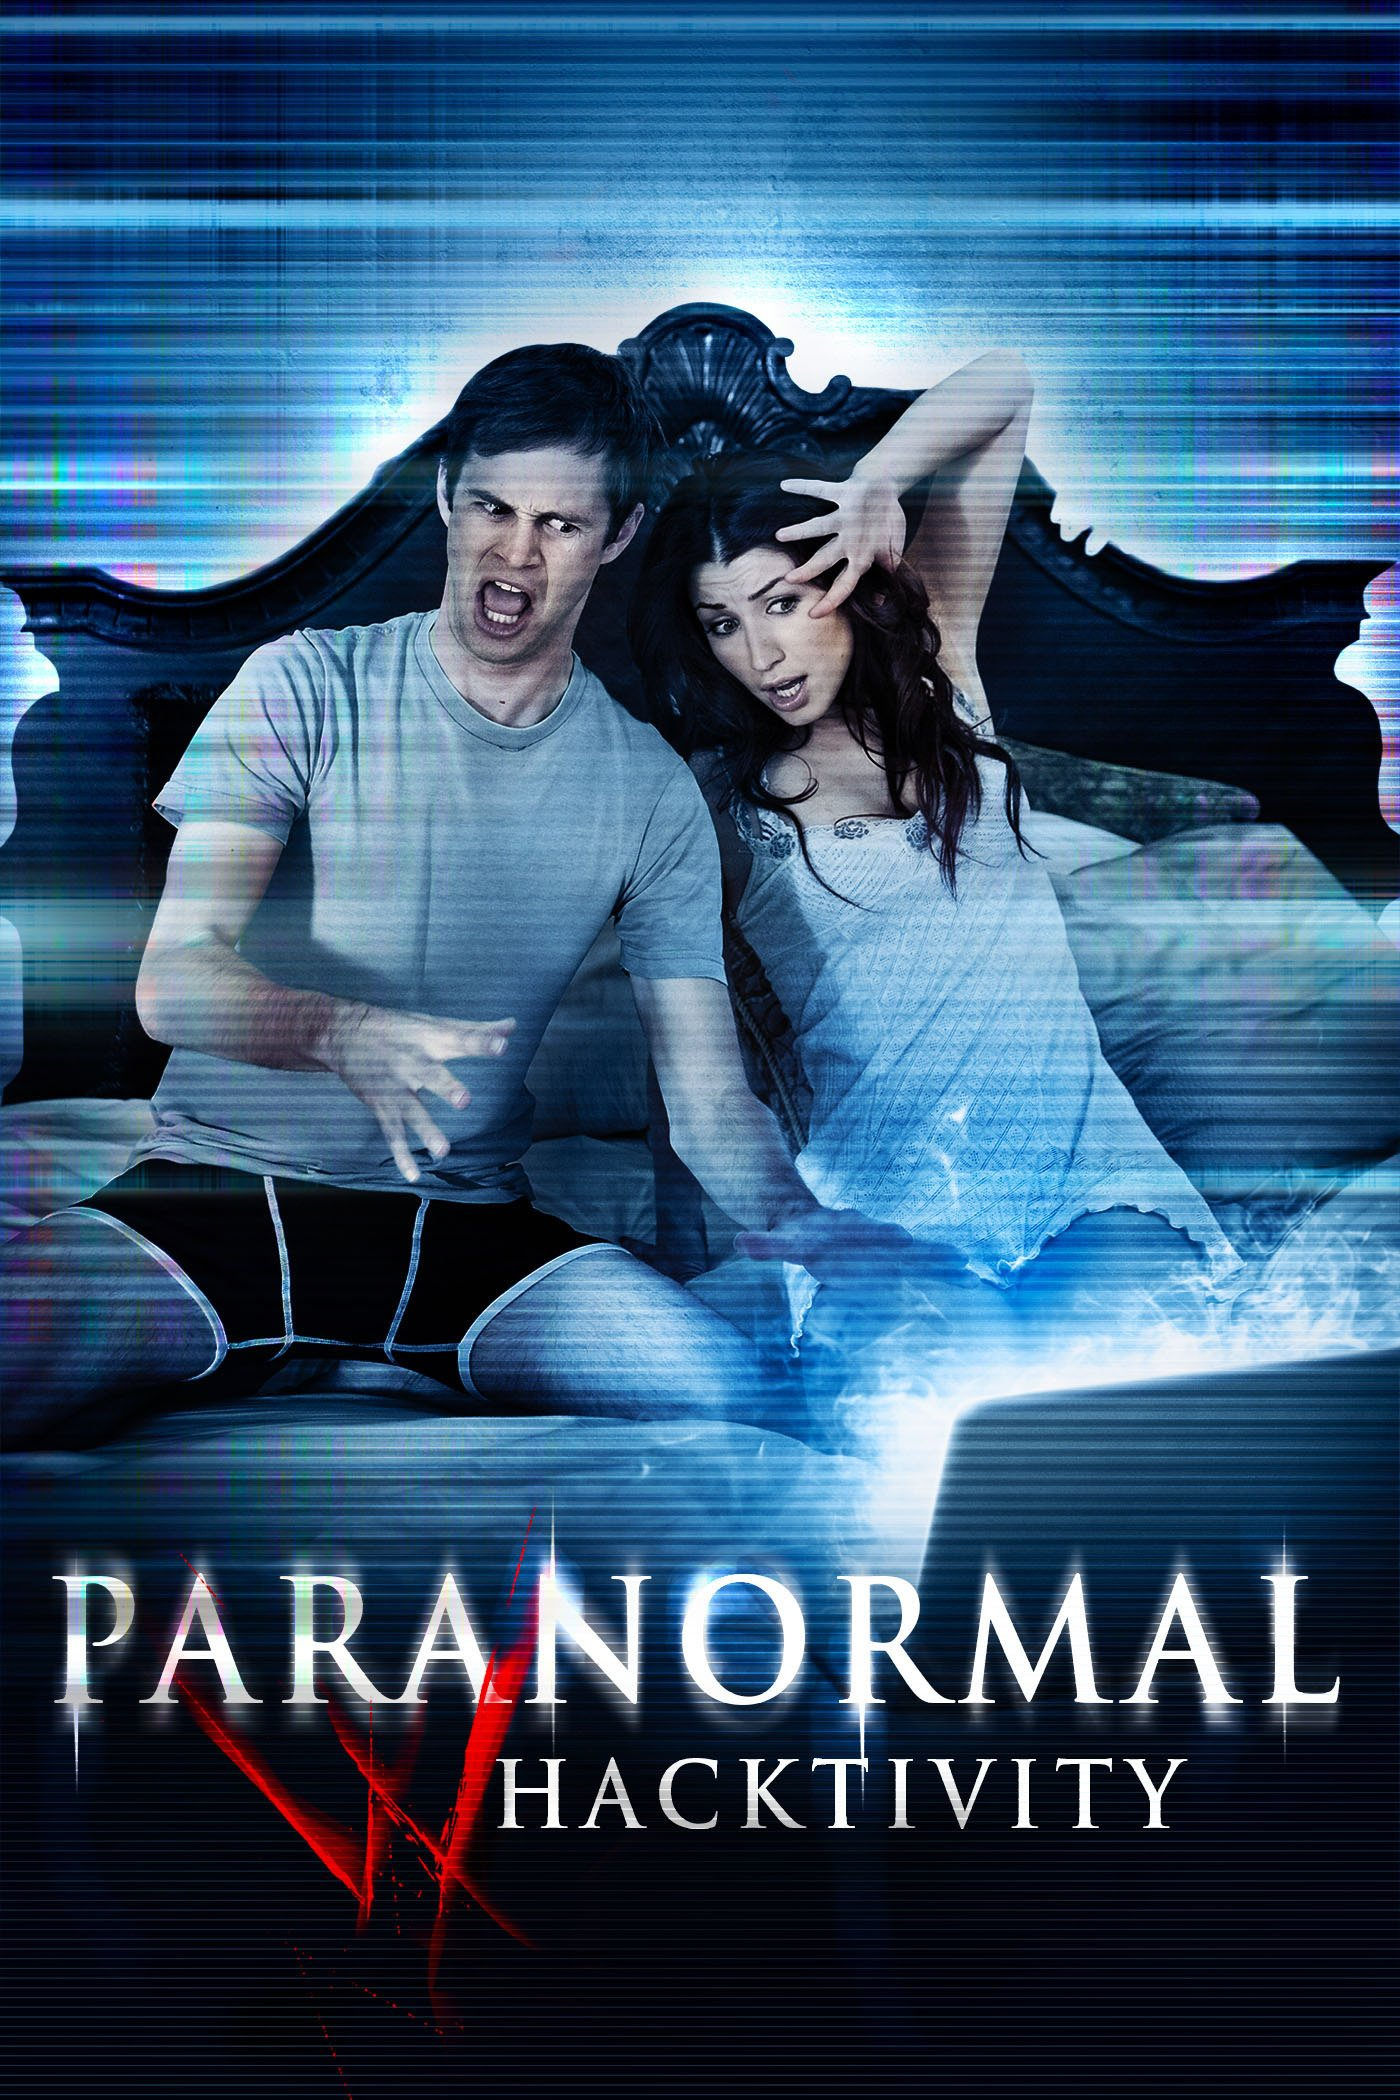 Watch Paranormal Whacktivity Prime Video